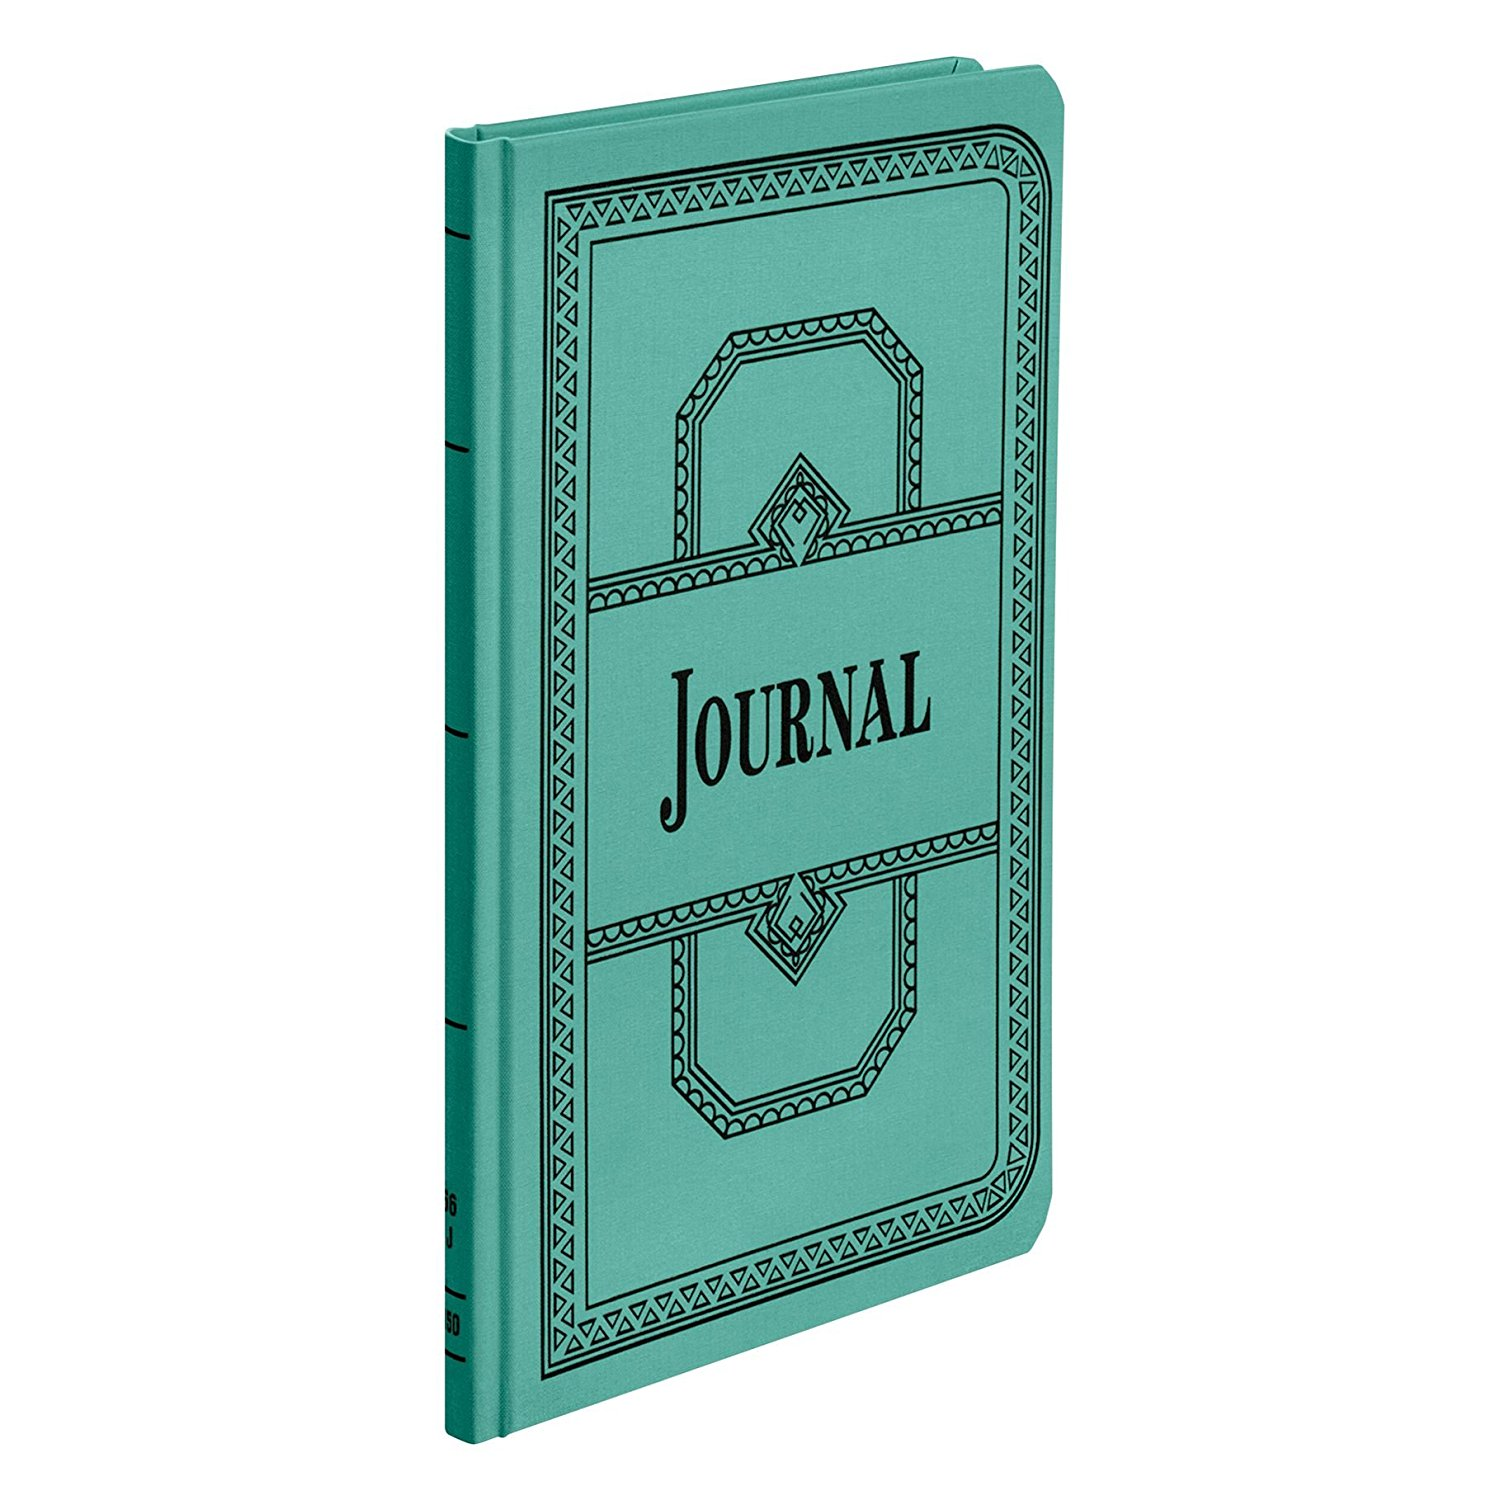 "66 Series Account Book, Journal Ruled, Green, 150 Pages, 12-1 8"" x 7-5 8"" (66-150-J), Account books... by"